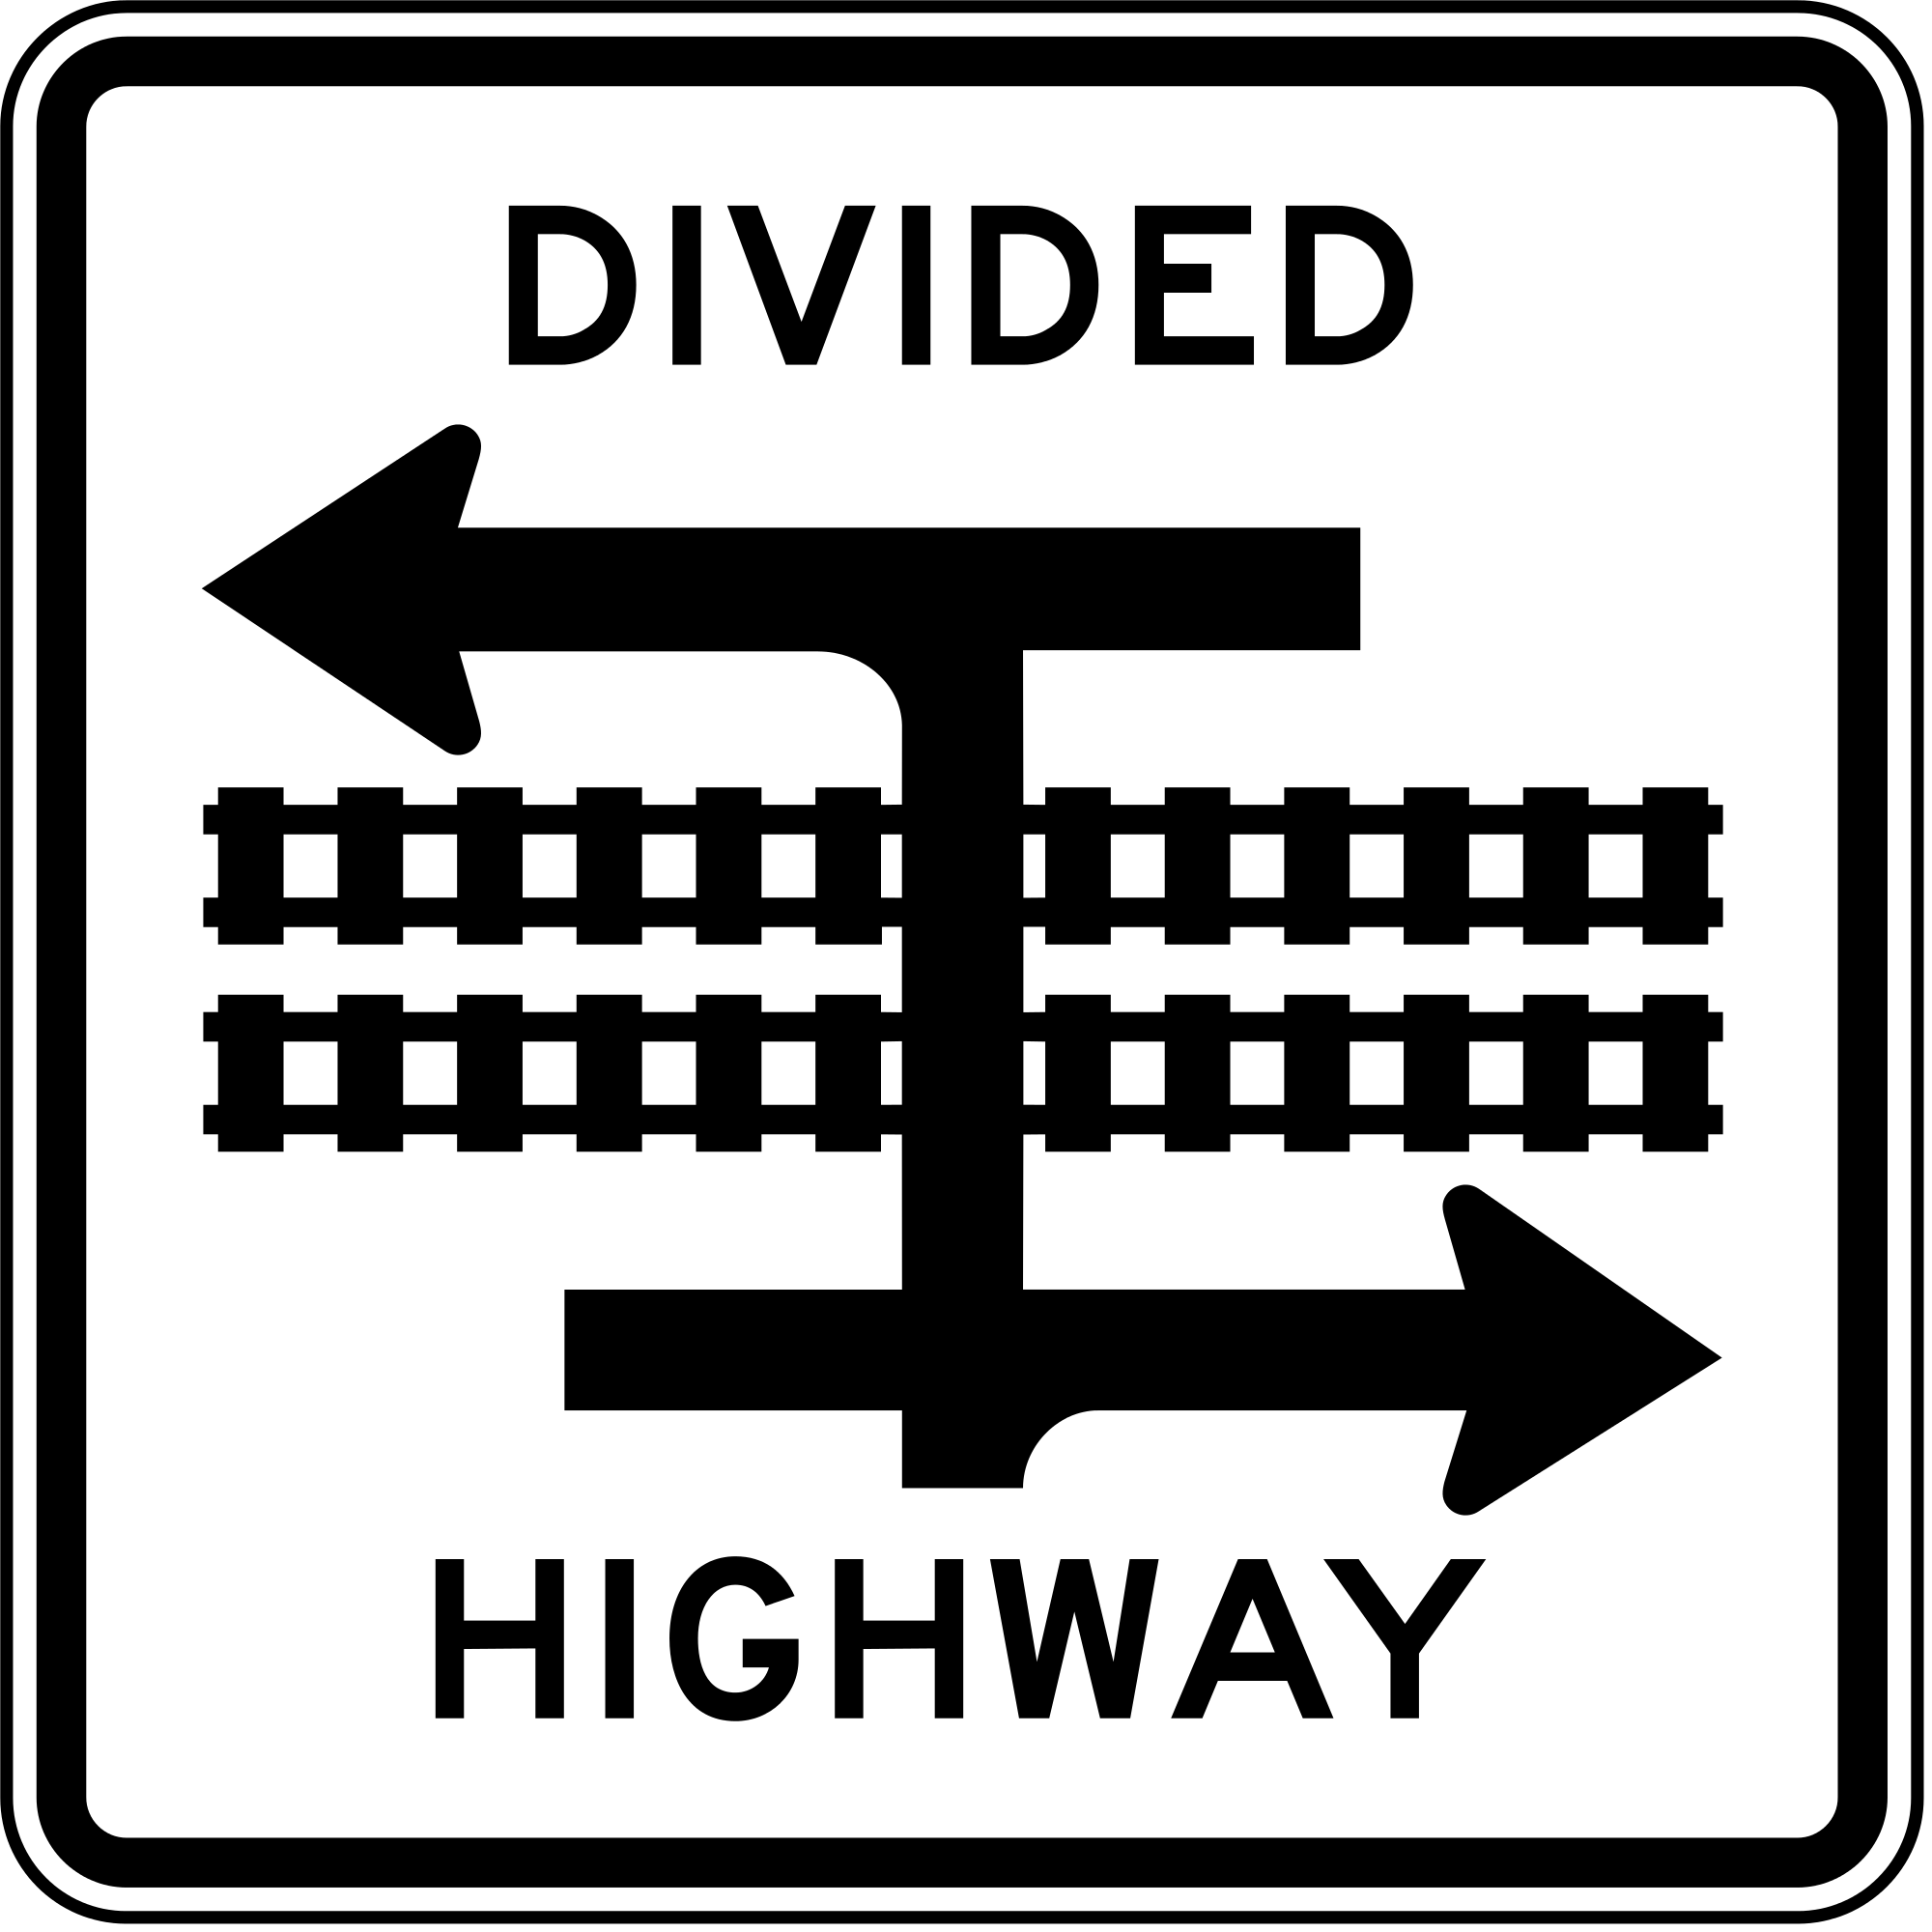 R15-7a Light Rail Divided Highway Symbol Regulatory Sign